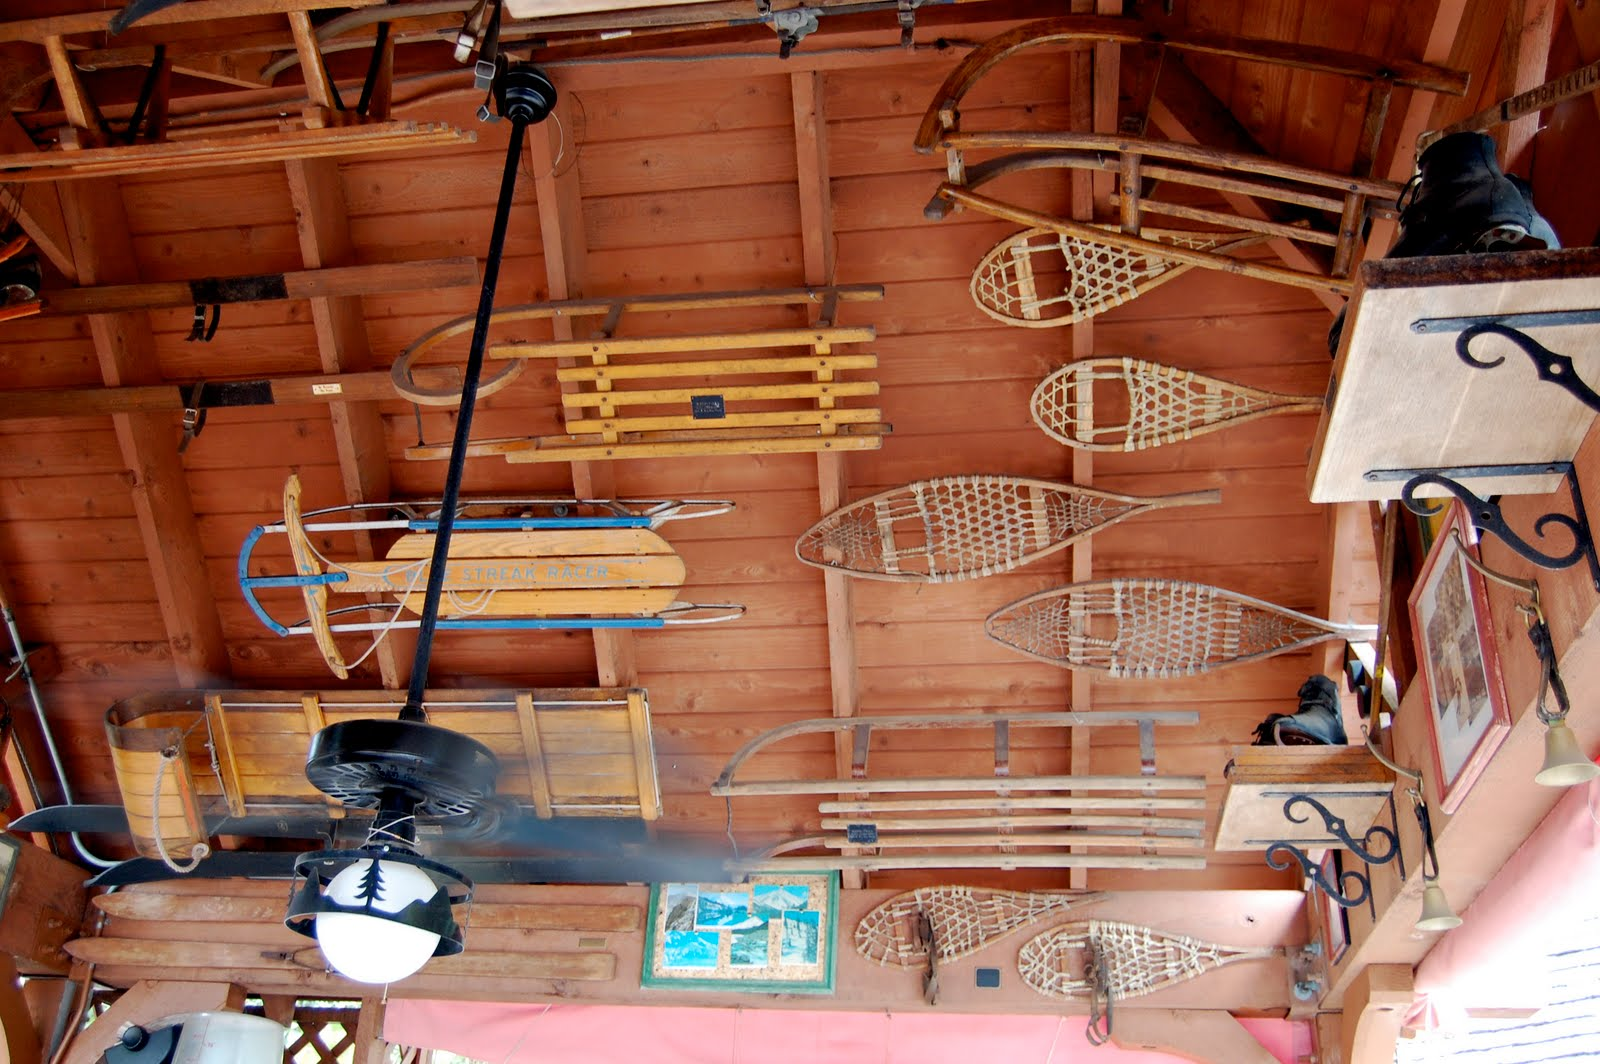 You Ll See Vintage Signs And Postcards From Ski Resorts Across The Country Along With A Collection Of Antique Sleds Skis Ice Skates Snowshoes